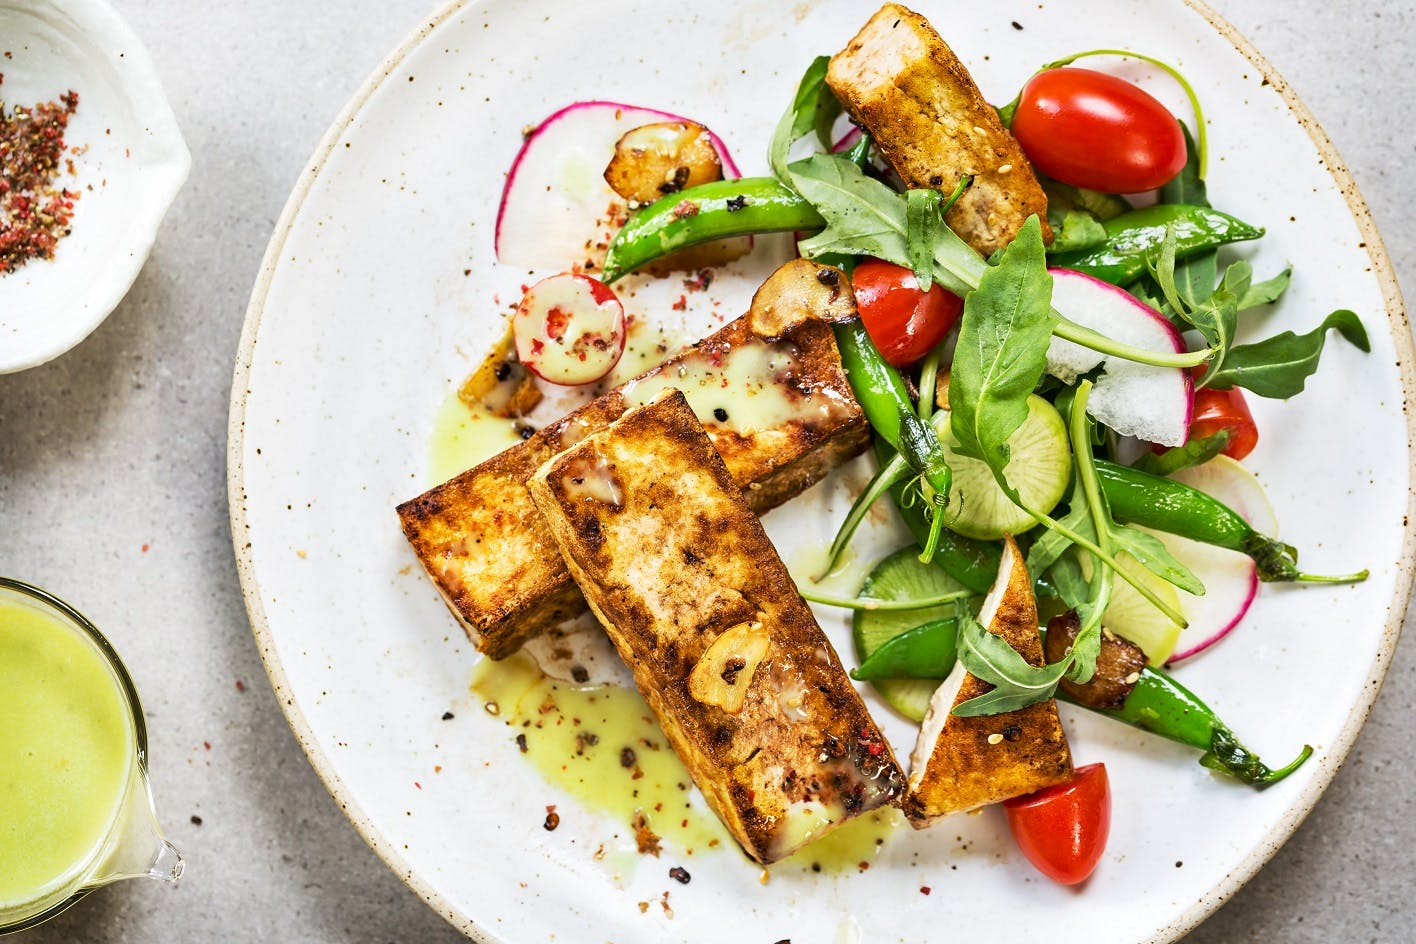 Tofu Steak with Snow Peas, Rocket and Wasabi Dressing